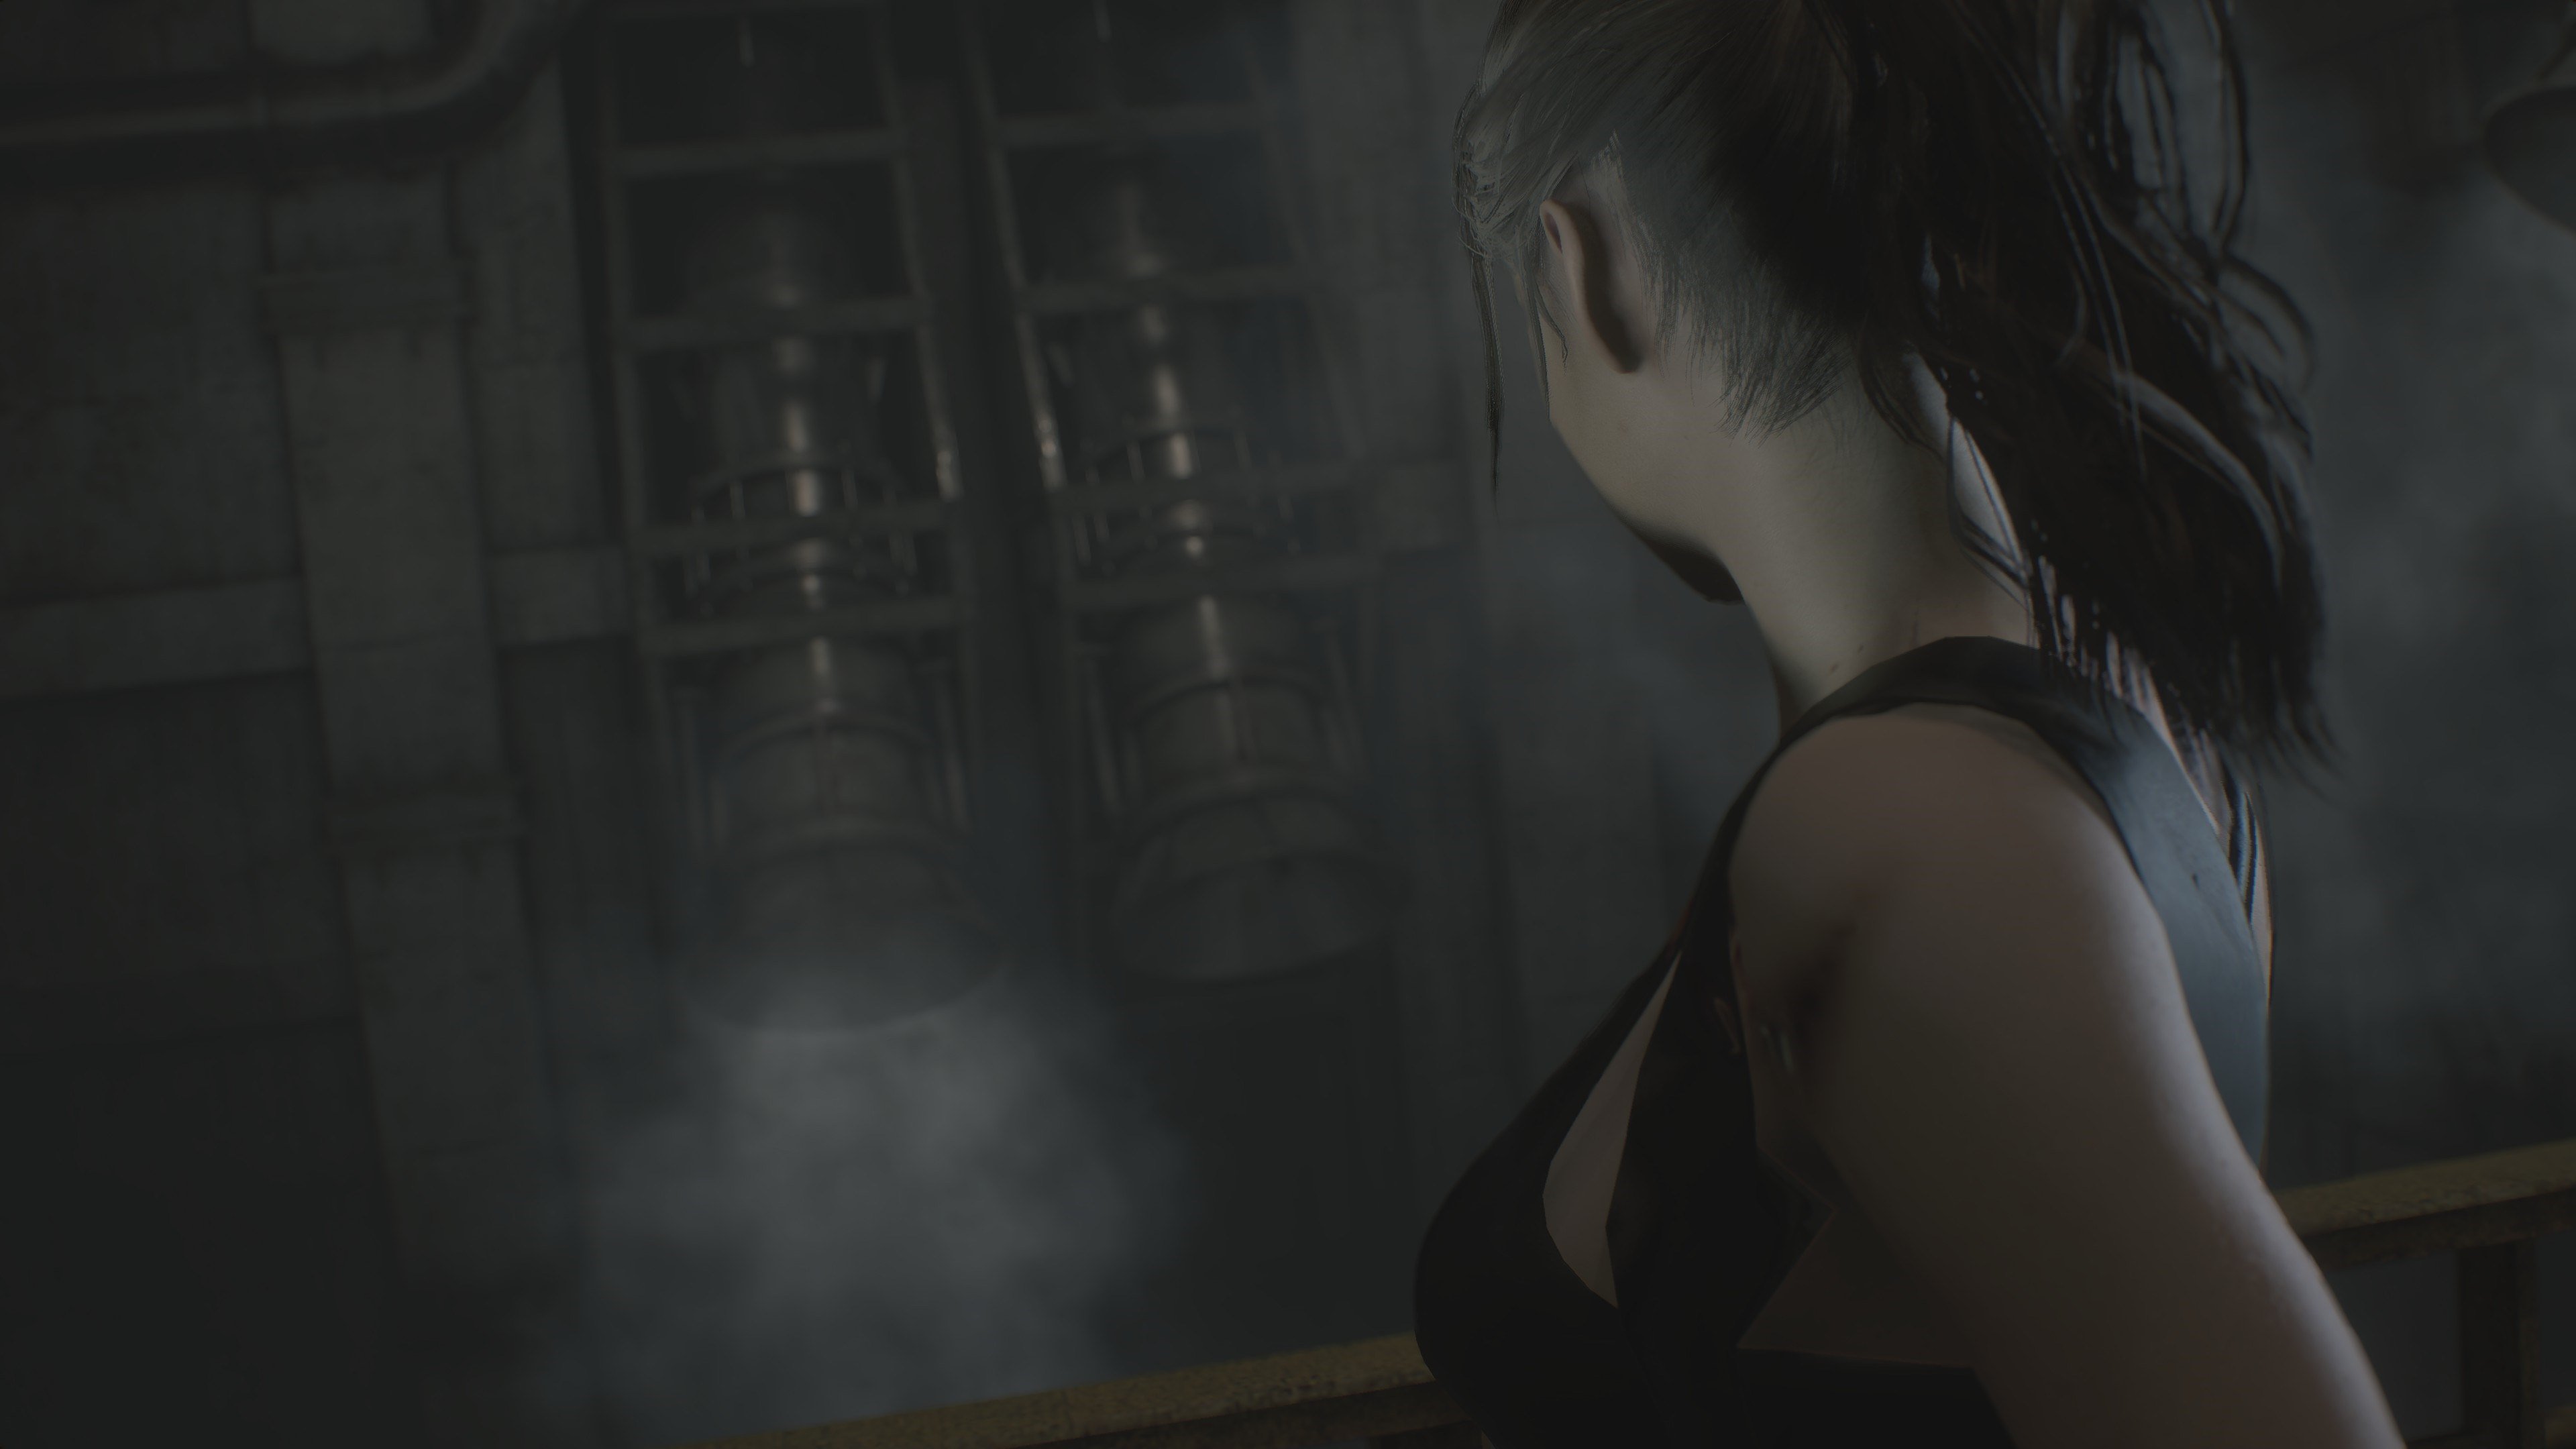 RESIDENT EVIL 2 / BIOHAZARD RE:2 Claire College girl mod ultra graphics rtx - Resident Evil 2